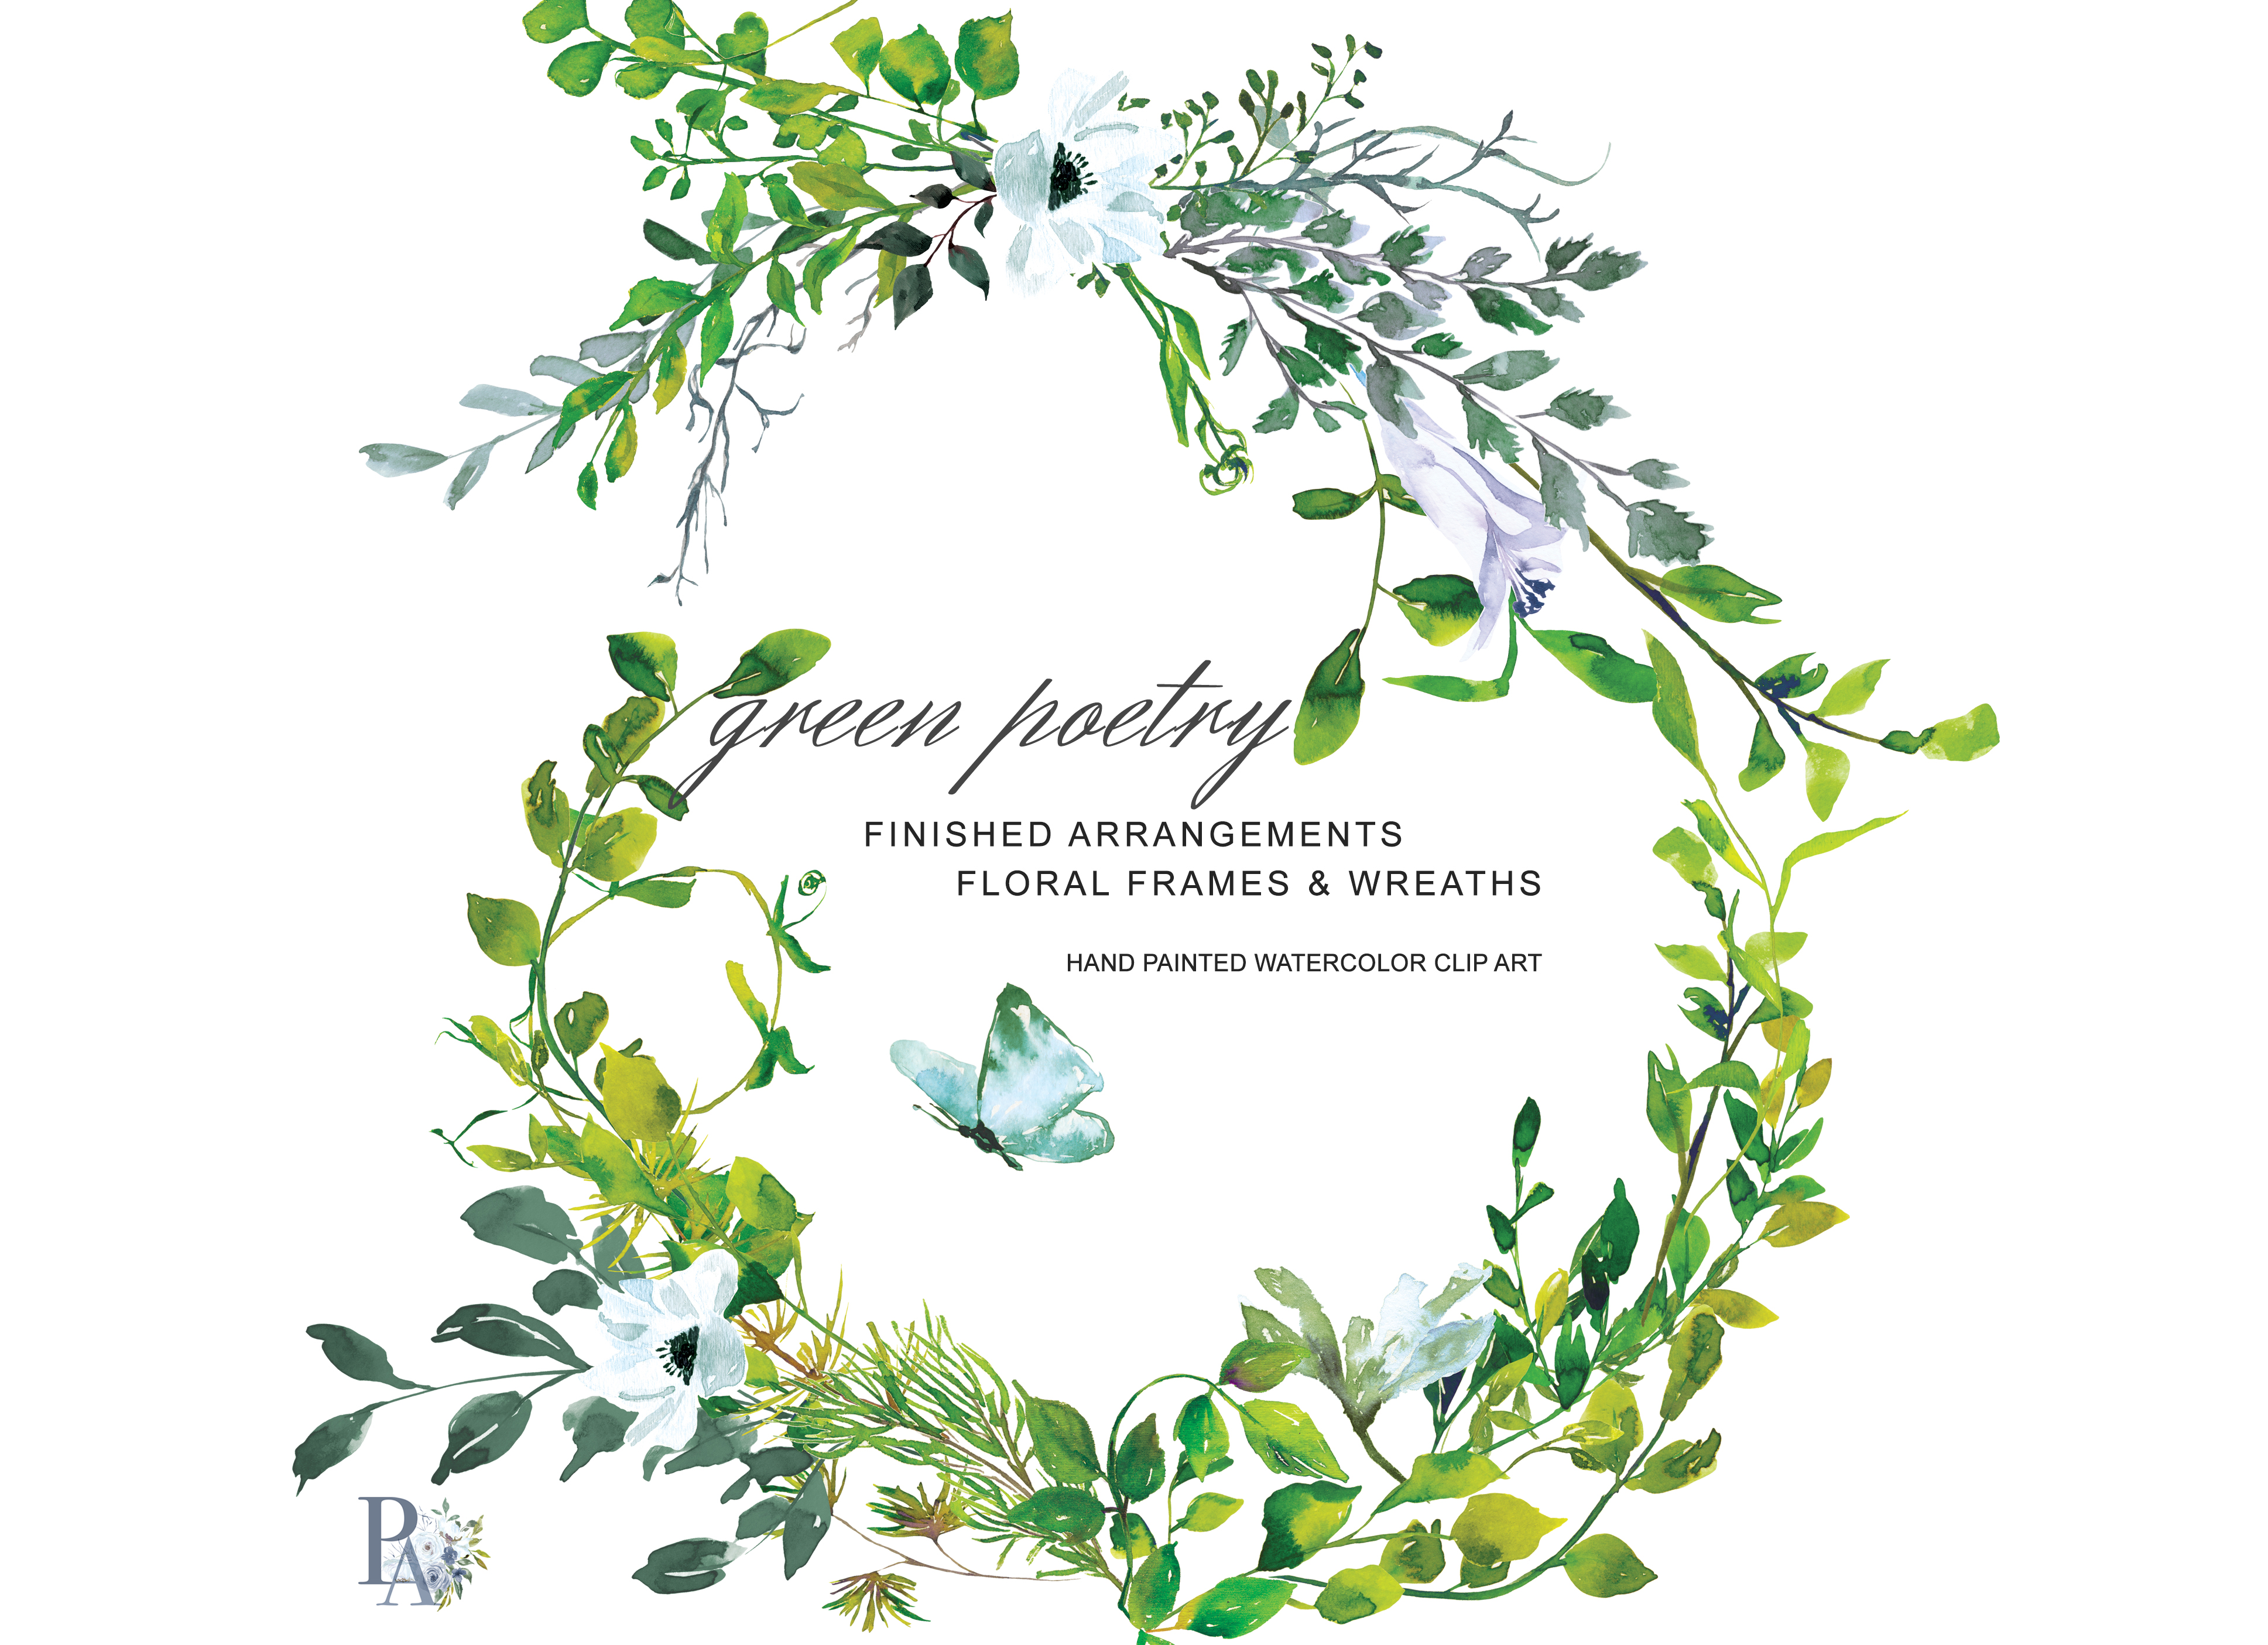 Hand Painted Watercolor Greenery Clipart.